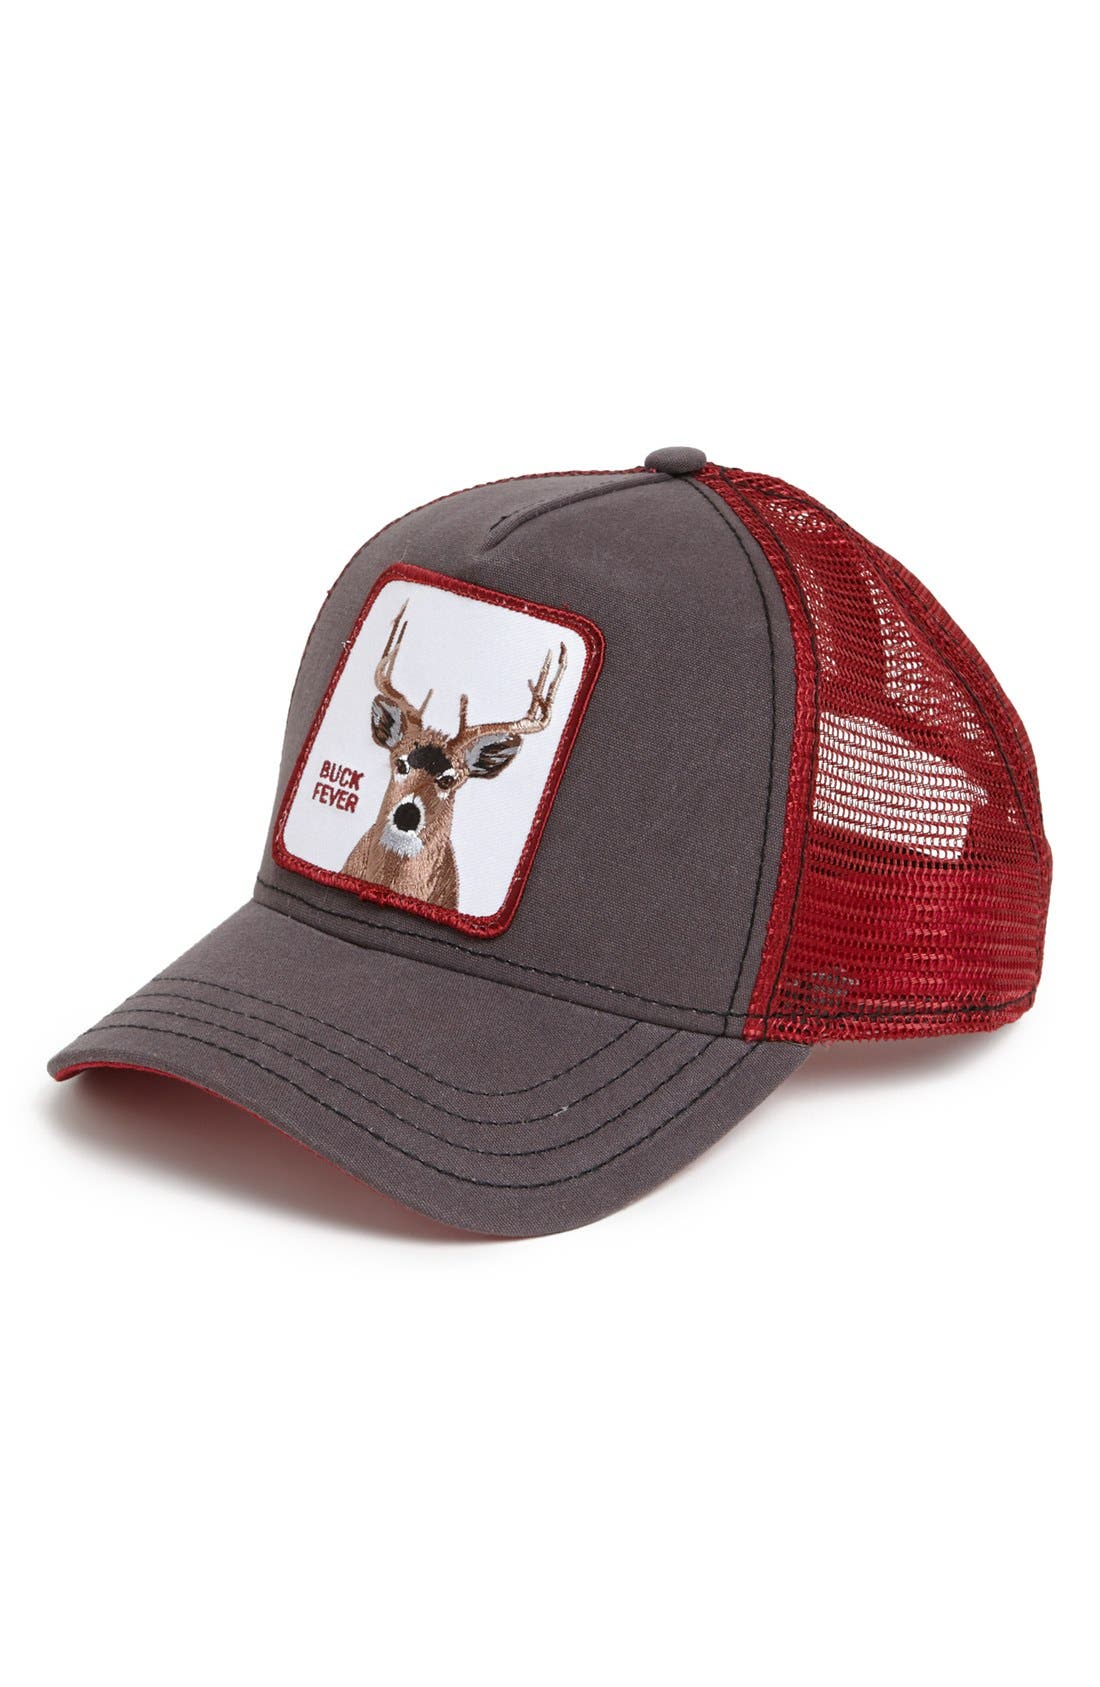 'Animal Farm - Buck Fever' Trucker Cap,                             Main thumbnail 1, color,                             Brown/ Red